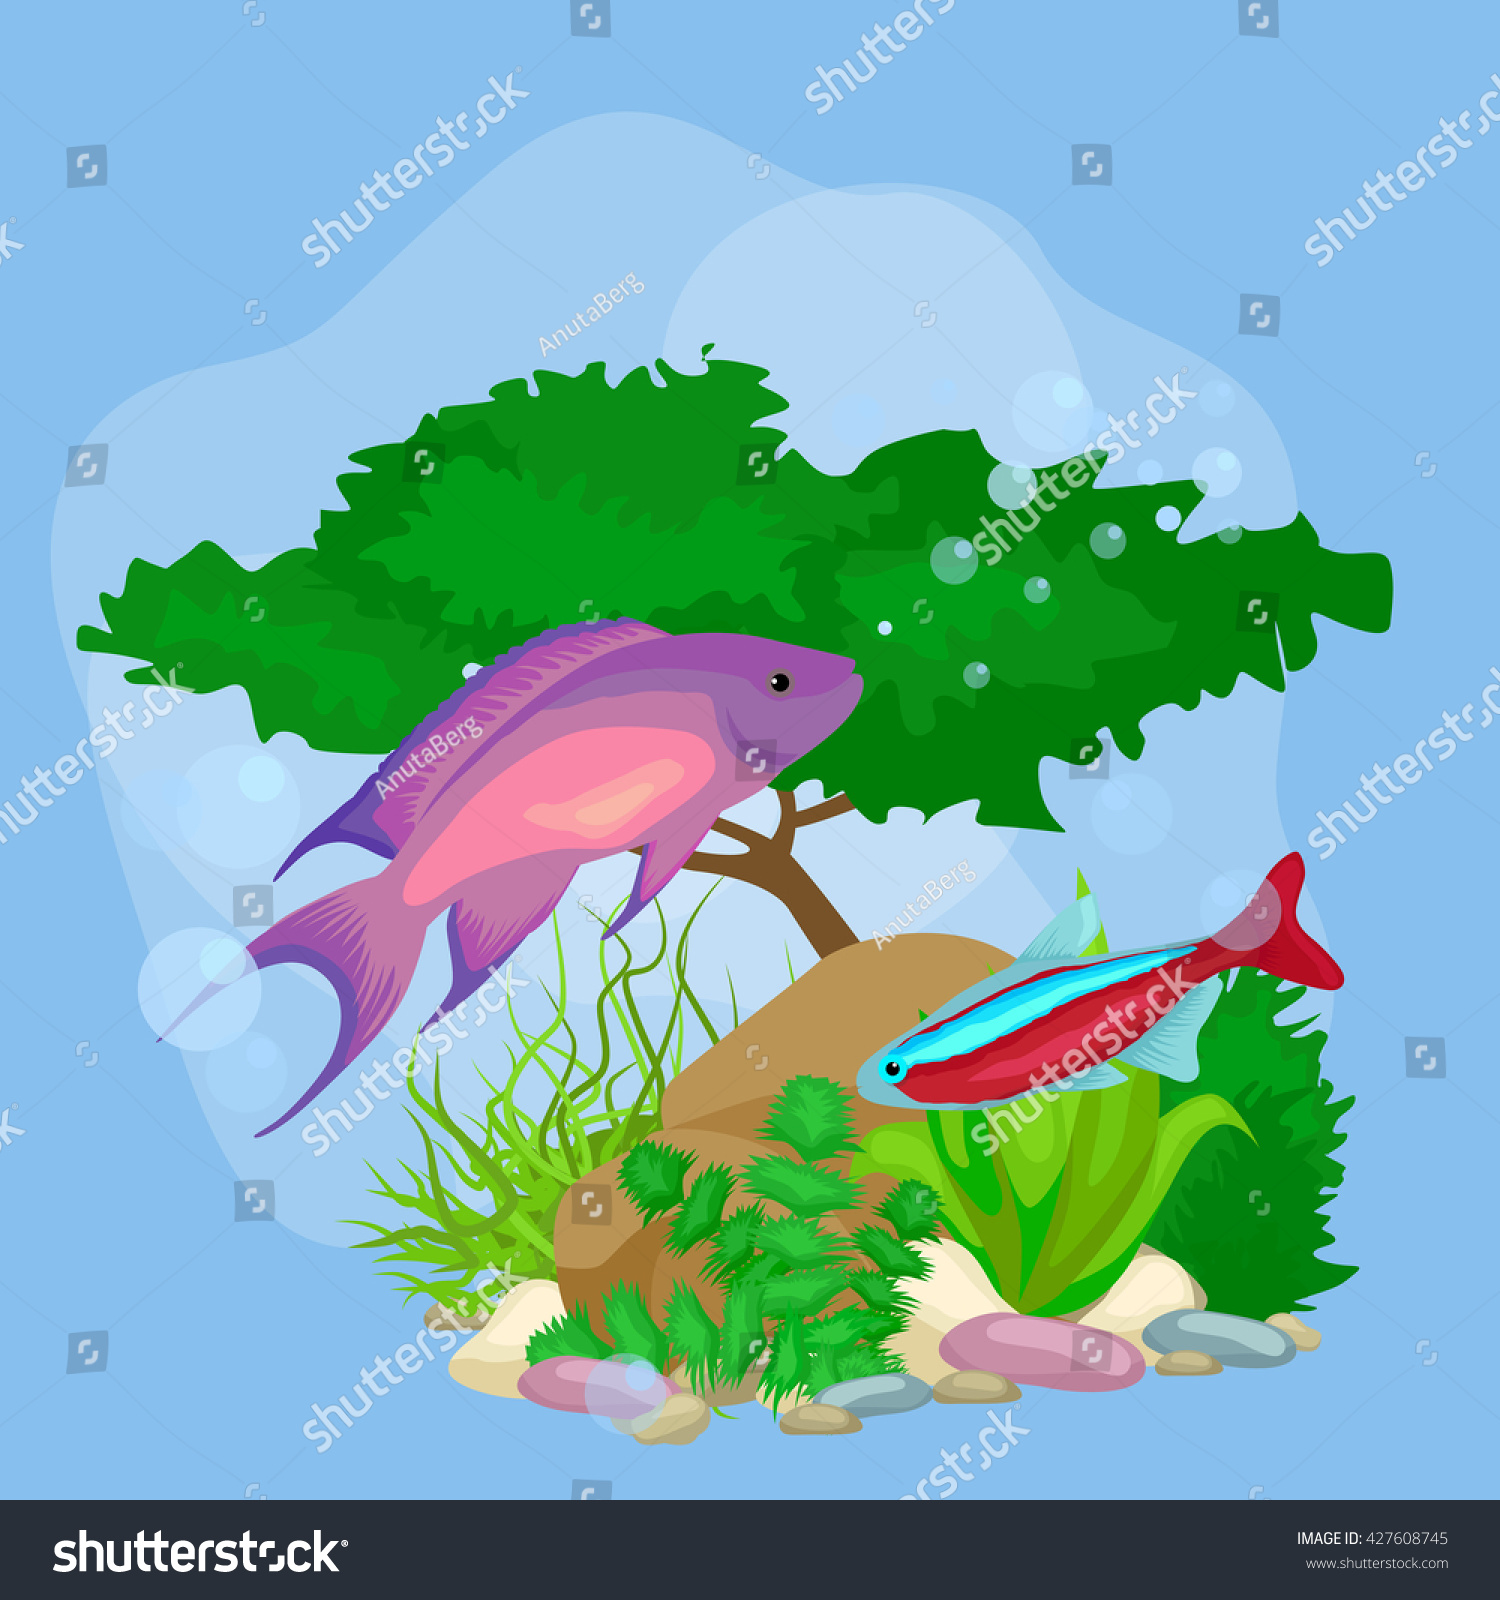 Cartoon Tropical Fish Swimming Nature Undersea Stock Vector ... on home cooking designs, home park designs, home gardening designs, home decor designs, home glass designs, home beach designs, home plans designs, home construction designs, home water feature designs, home lake designs, home library designs, home entertainment designs, home school designs, florida home designs, home archery range designs, home art designs, home salt designs, home dog kennel designs, home castle designs, home cafe designs,